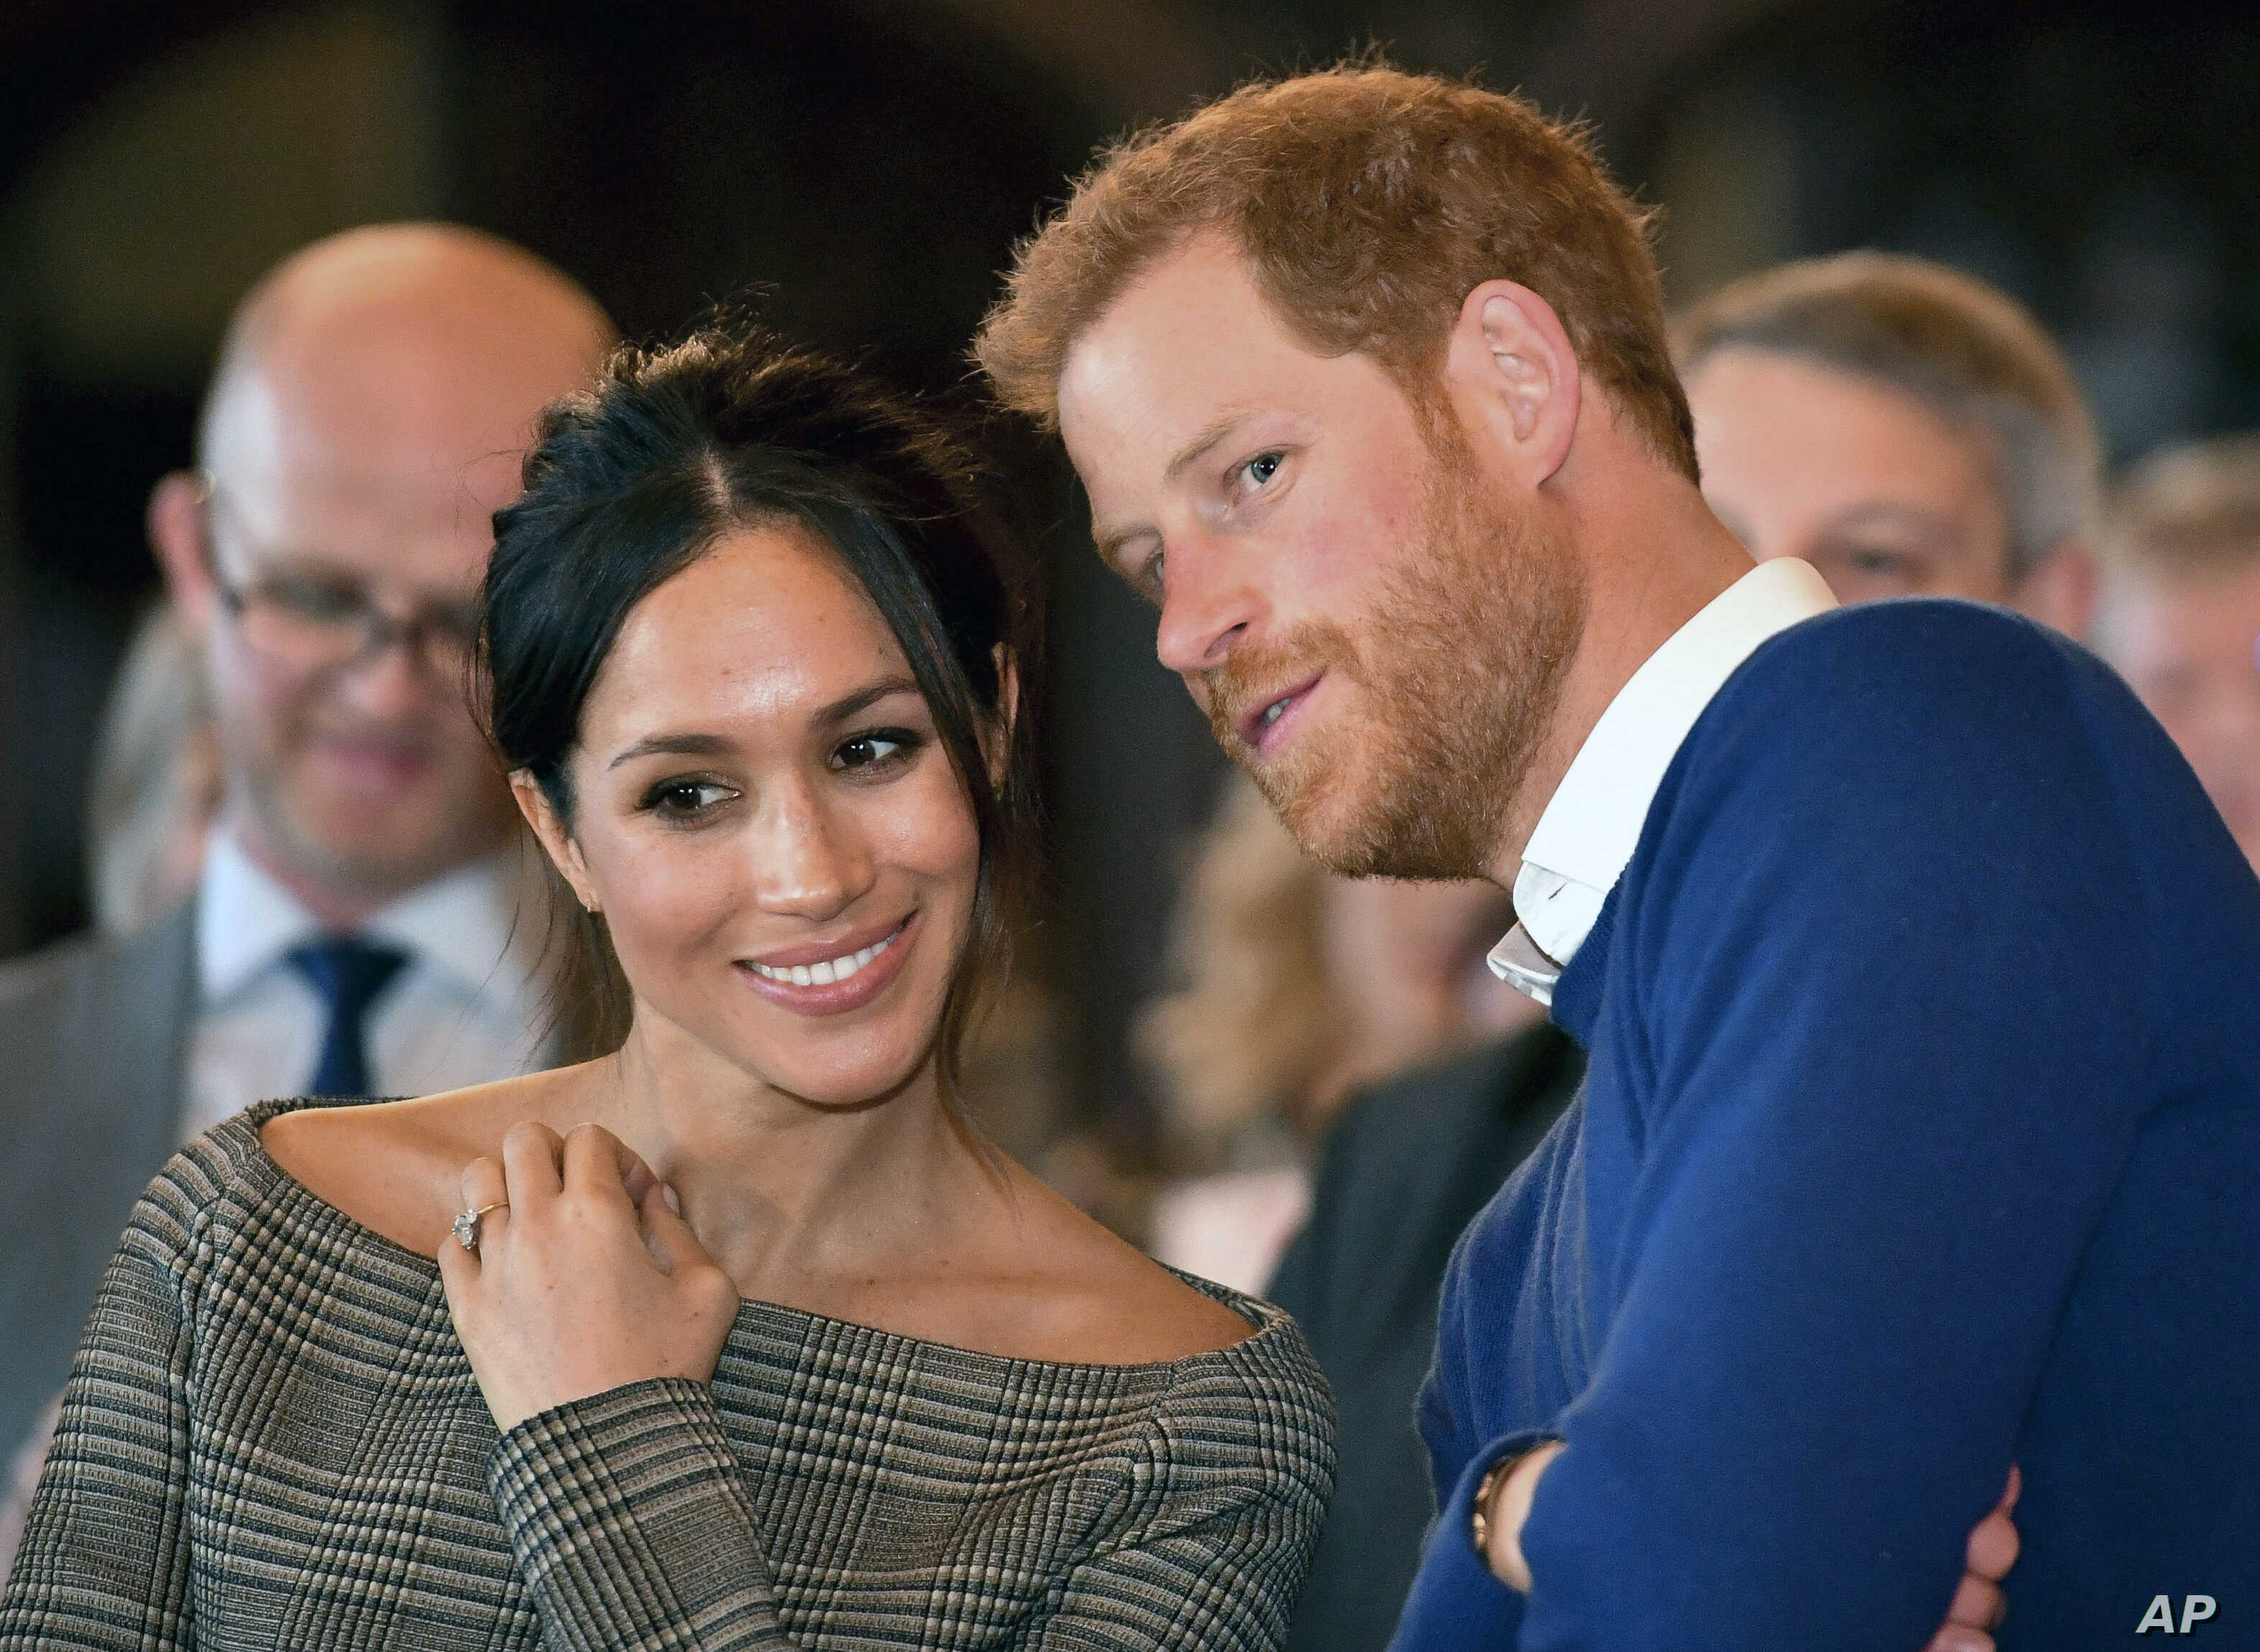 Royal Wedding Harry And Meghan.Royal Wedding Guess List Who Gets A Nod From Harry Meghan Voice